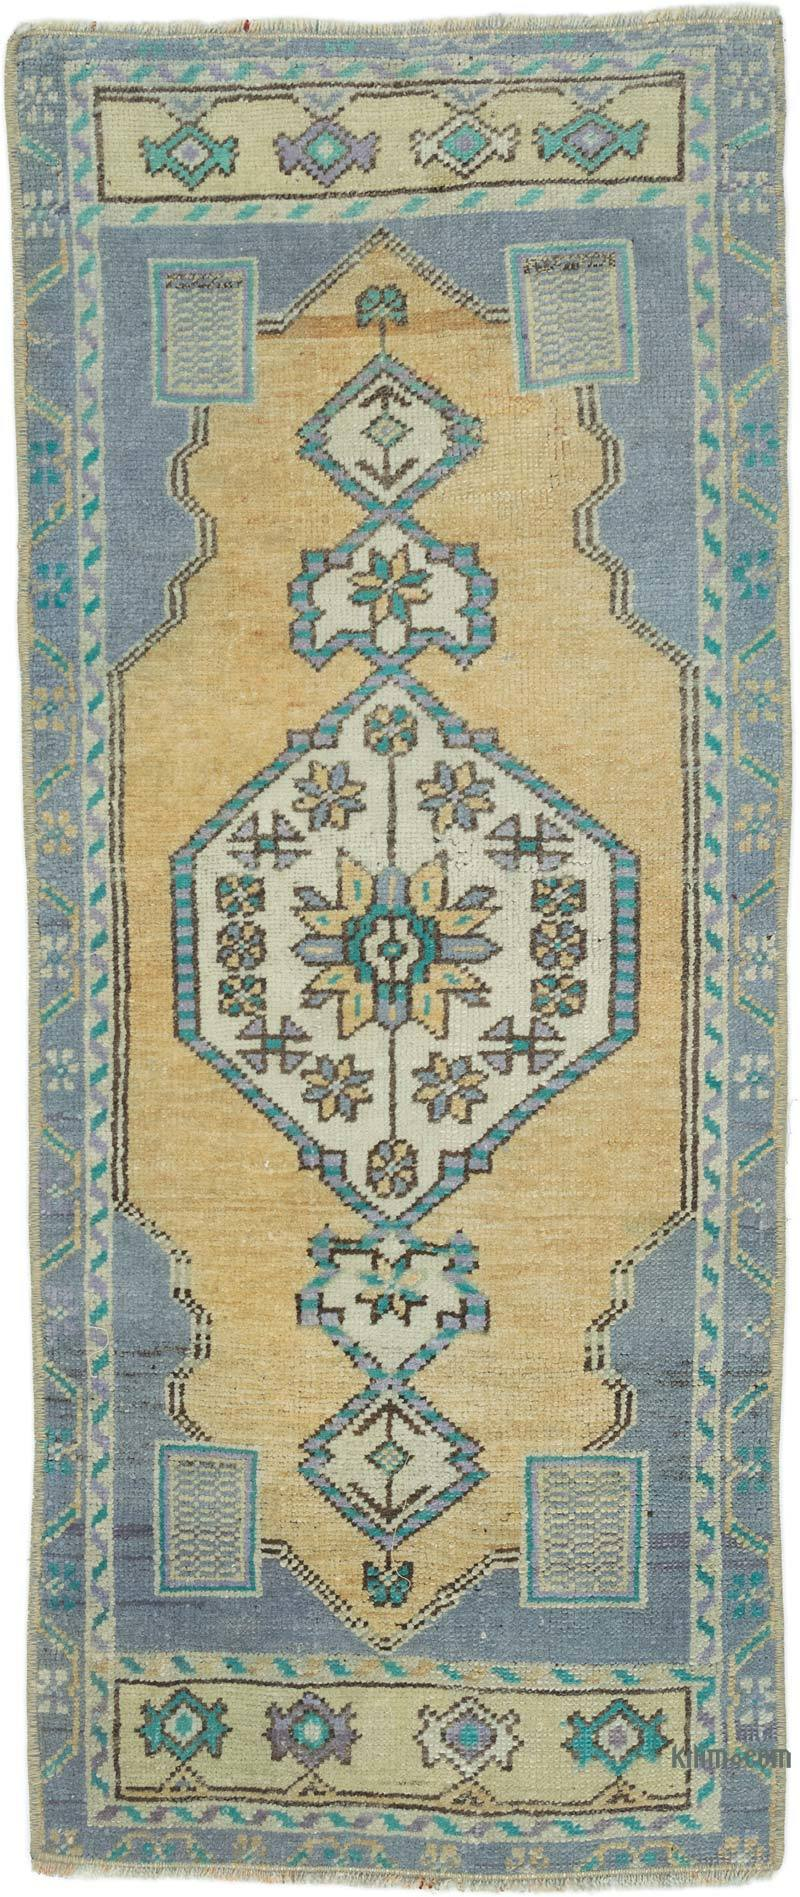 """Vintage Turkish Hand-Knotted Rug - 1' 5"""" x 3' 5"""" (17 in. x 41 in.) - K0054276"""